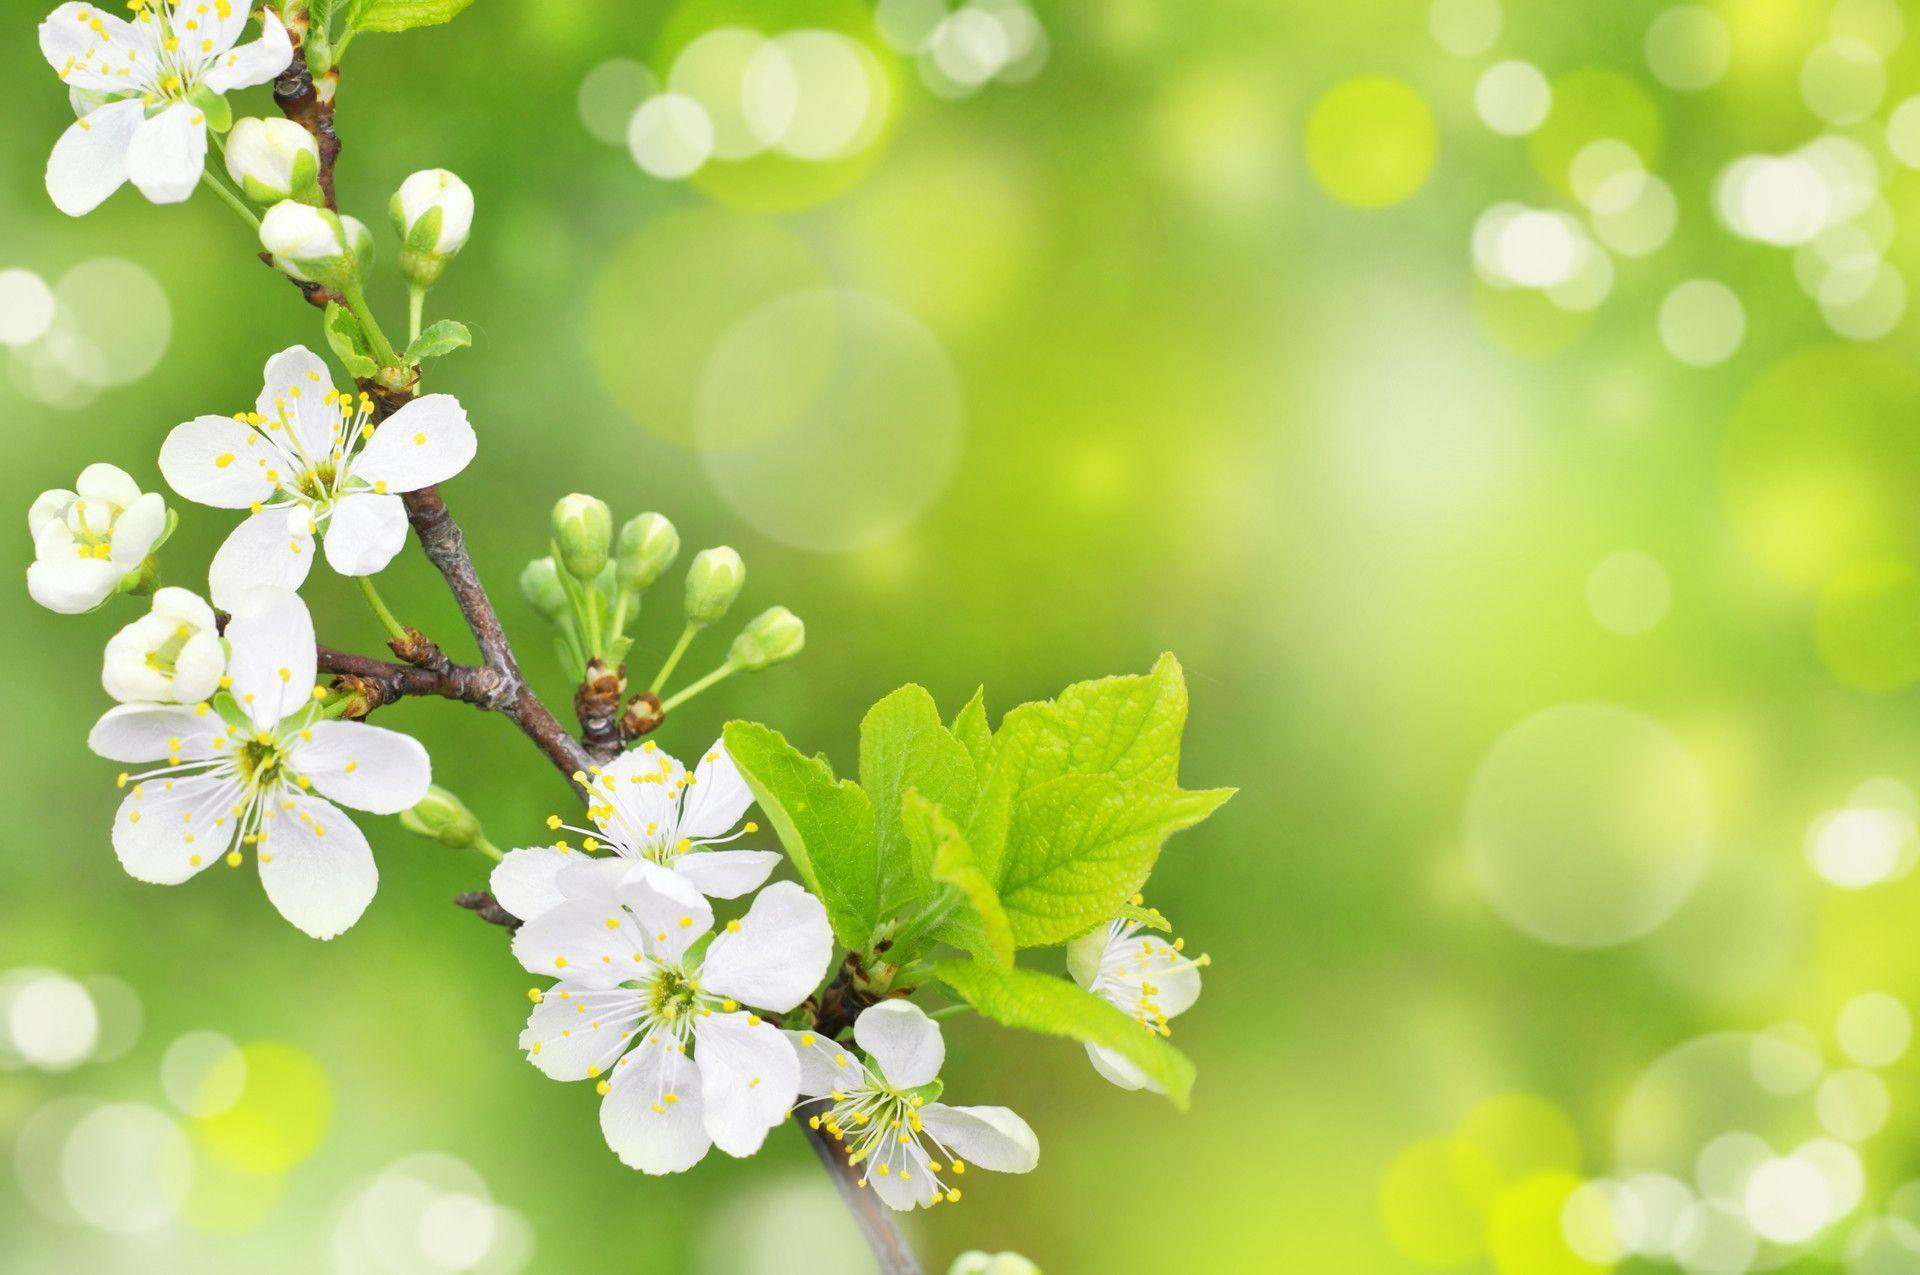 Download Free Spring Wallpaper Hd Backgrounds Download